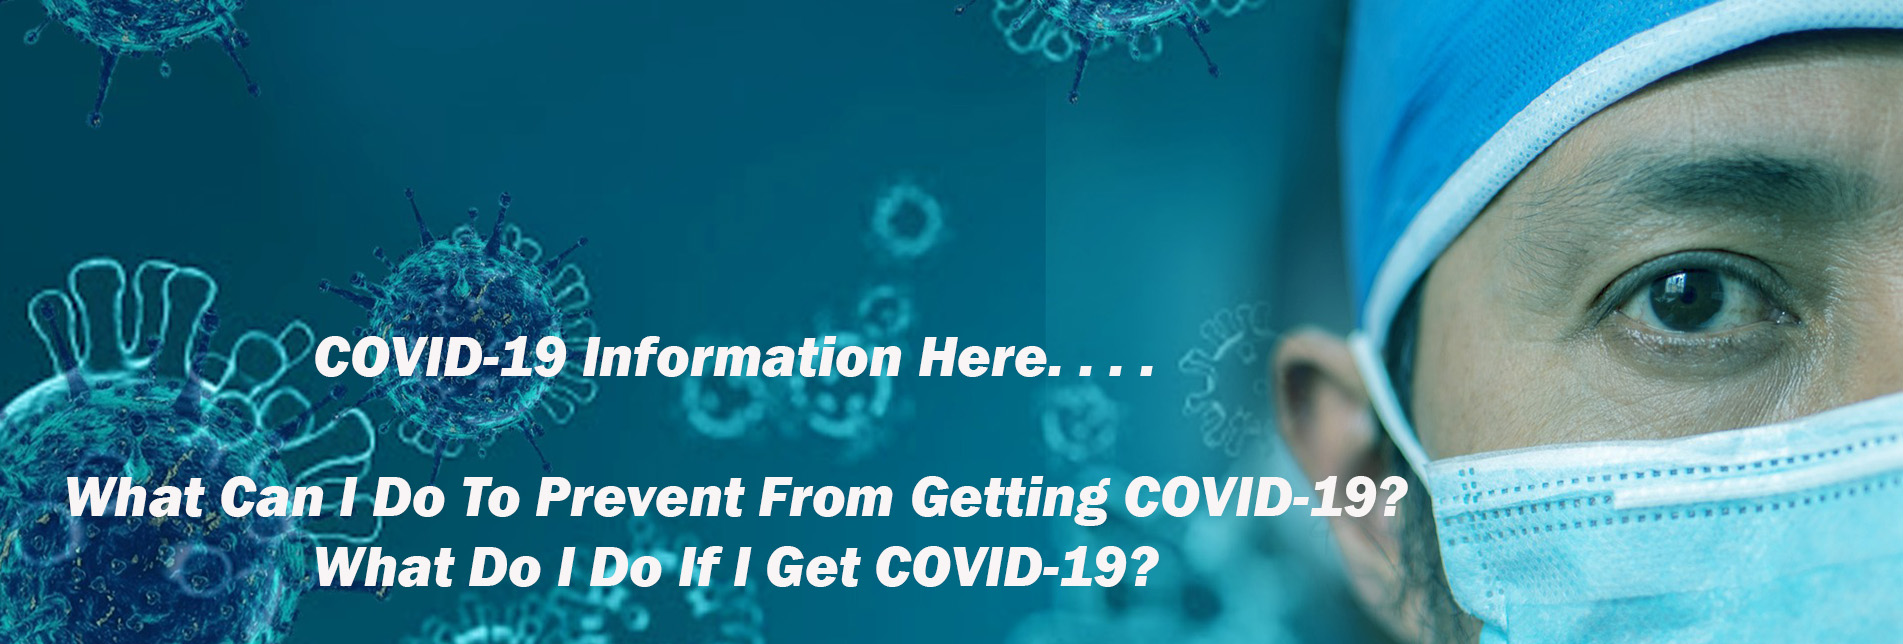 COVID-19 Information:    What To Do To Prevent COVID?                                What Do To If I Have COVID?